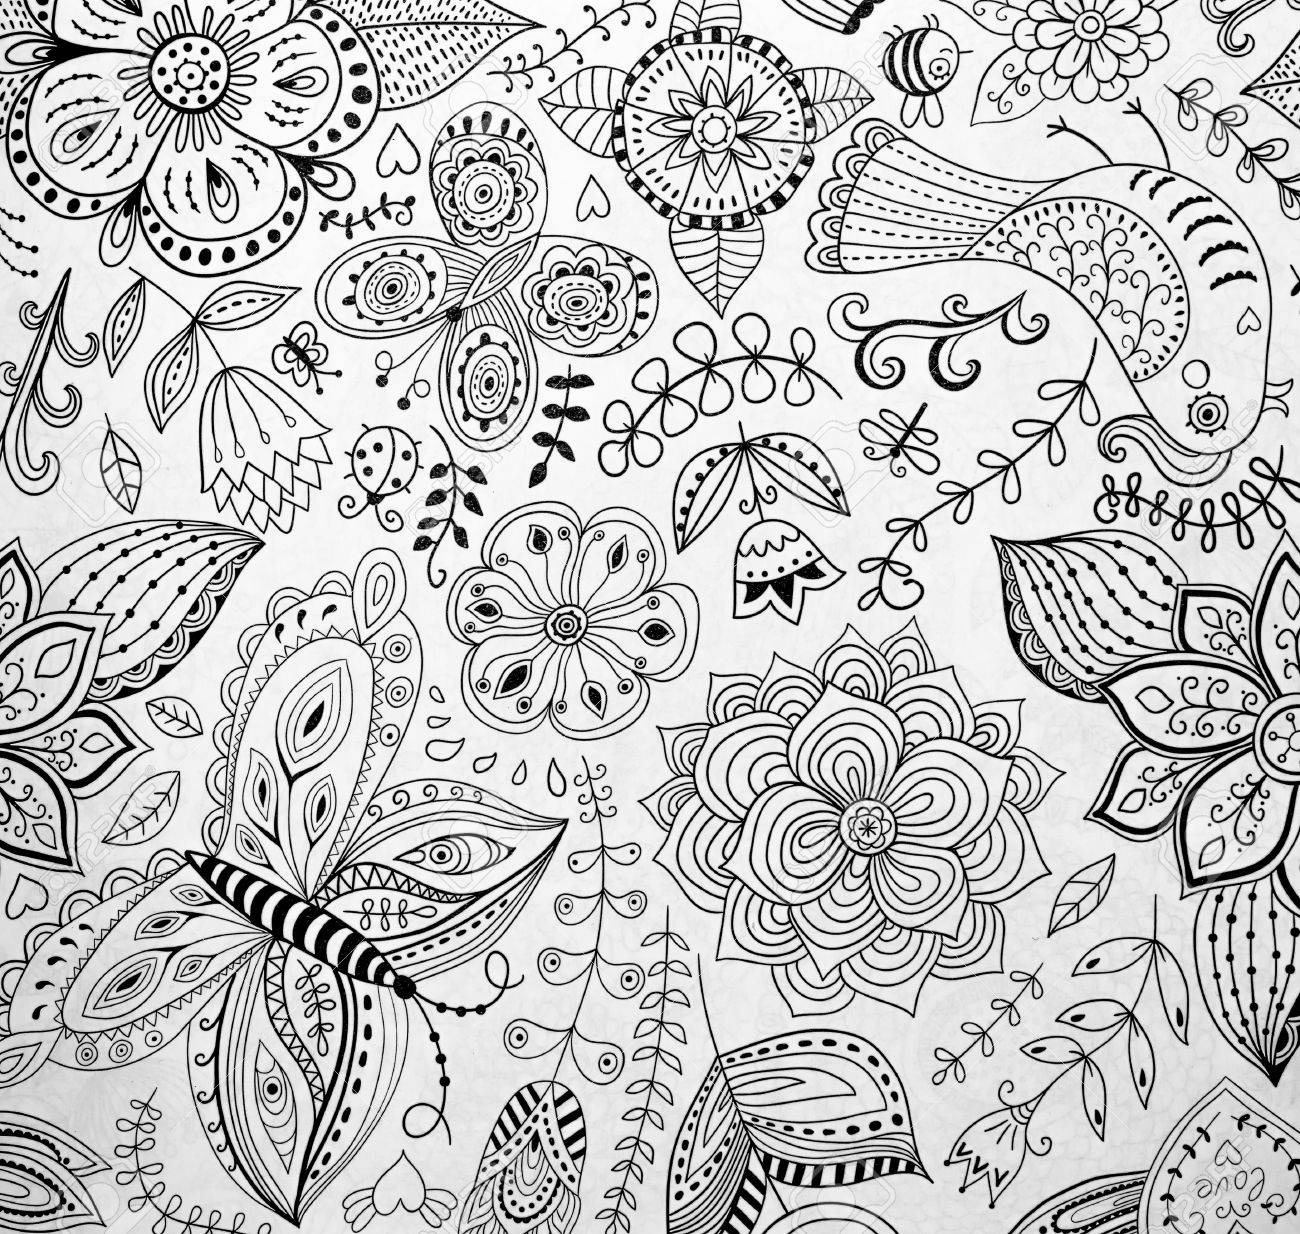 - Abstraction Coloring Pages For Adults,stress Relief, Top View